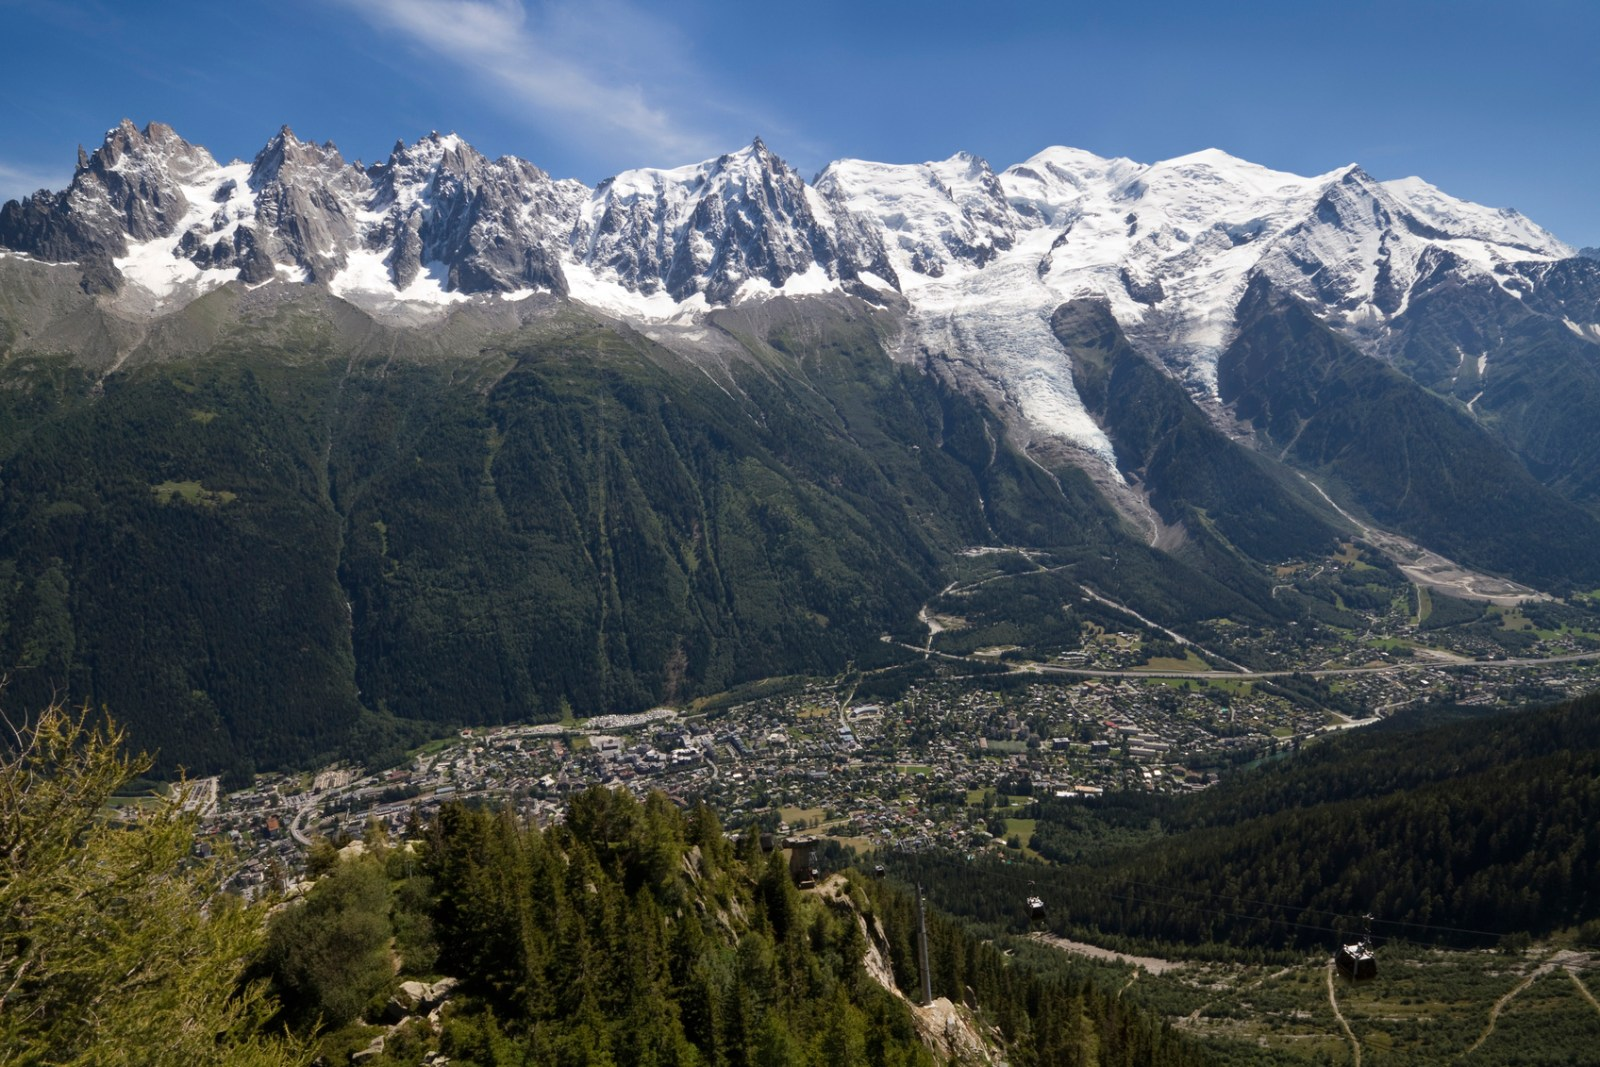 City of Mont Blanc with the mountain range in the background